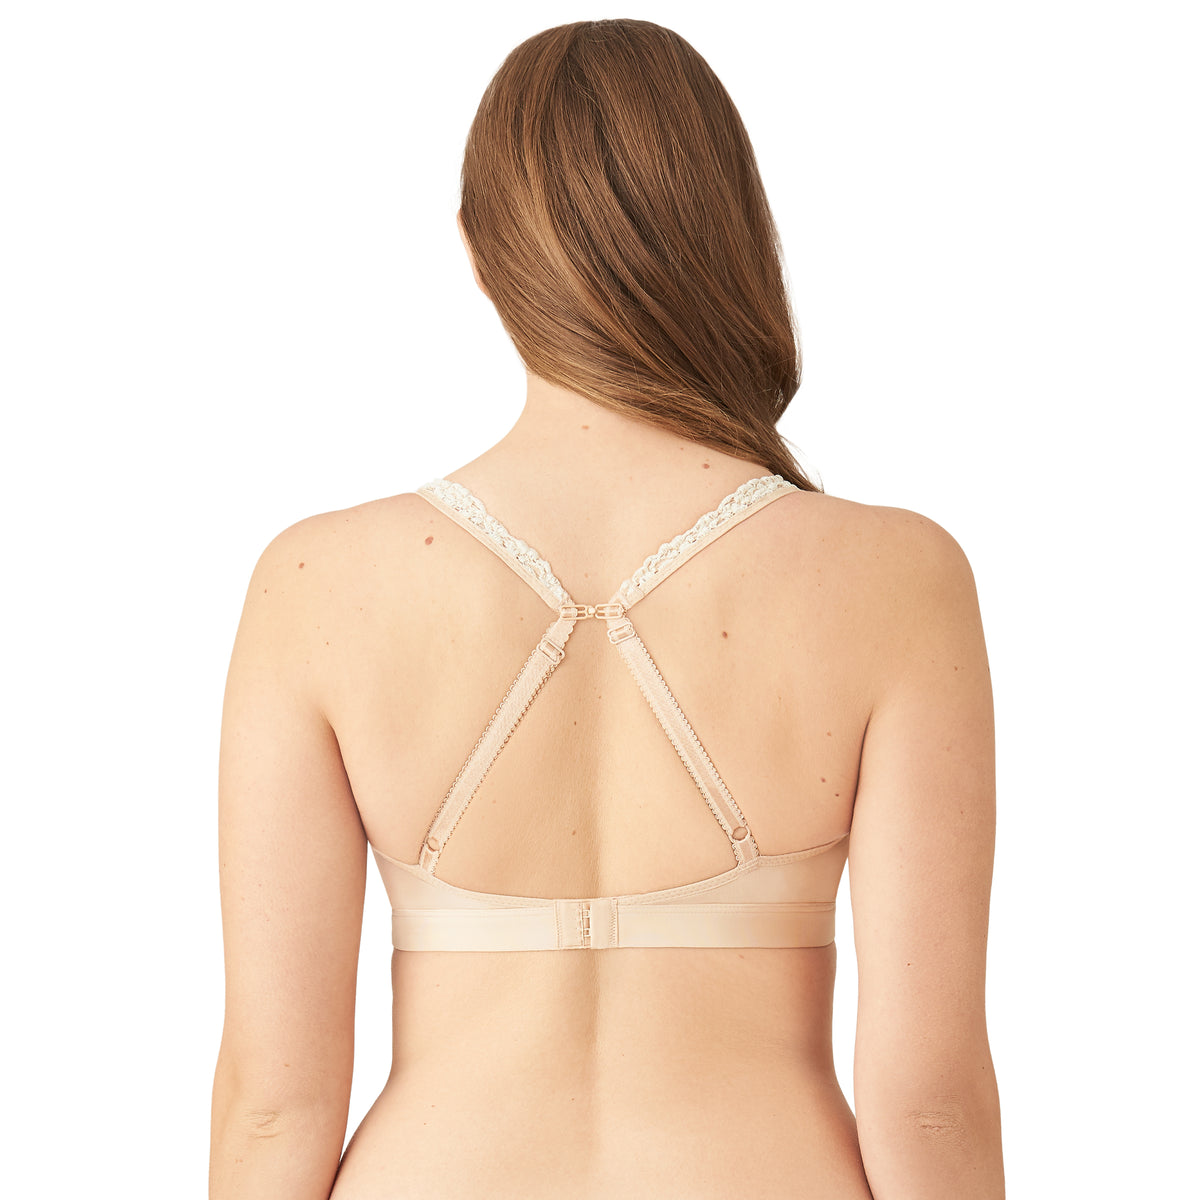 852191 Embrace Lace Wire Free Bra |NATURAL NUDE/IVORY| (271)